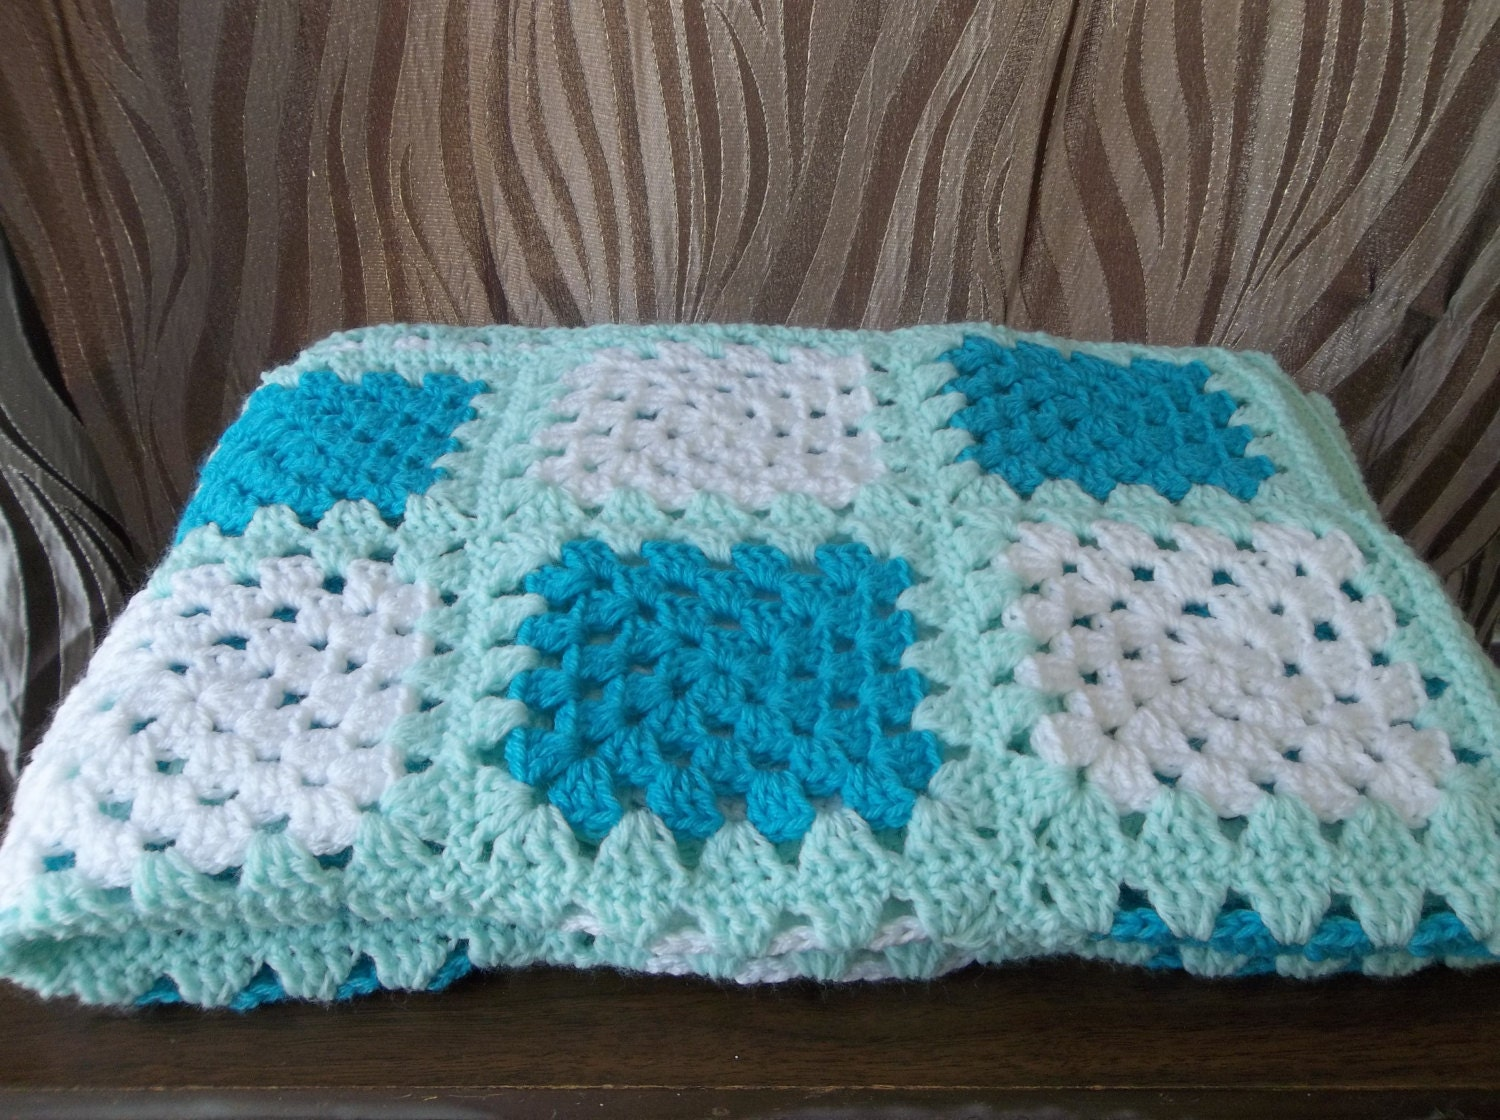 Bobblewrap handmade crochet baby blanket handmade crochet baby blanket by willknit4beer on etsy - Handmade gs silverware ...